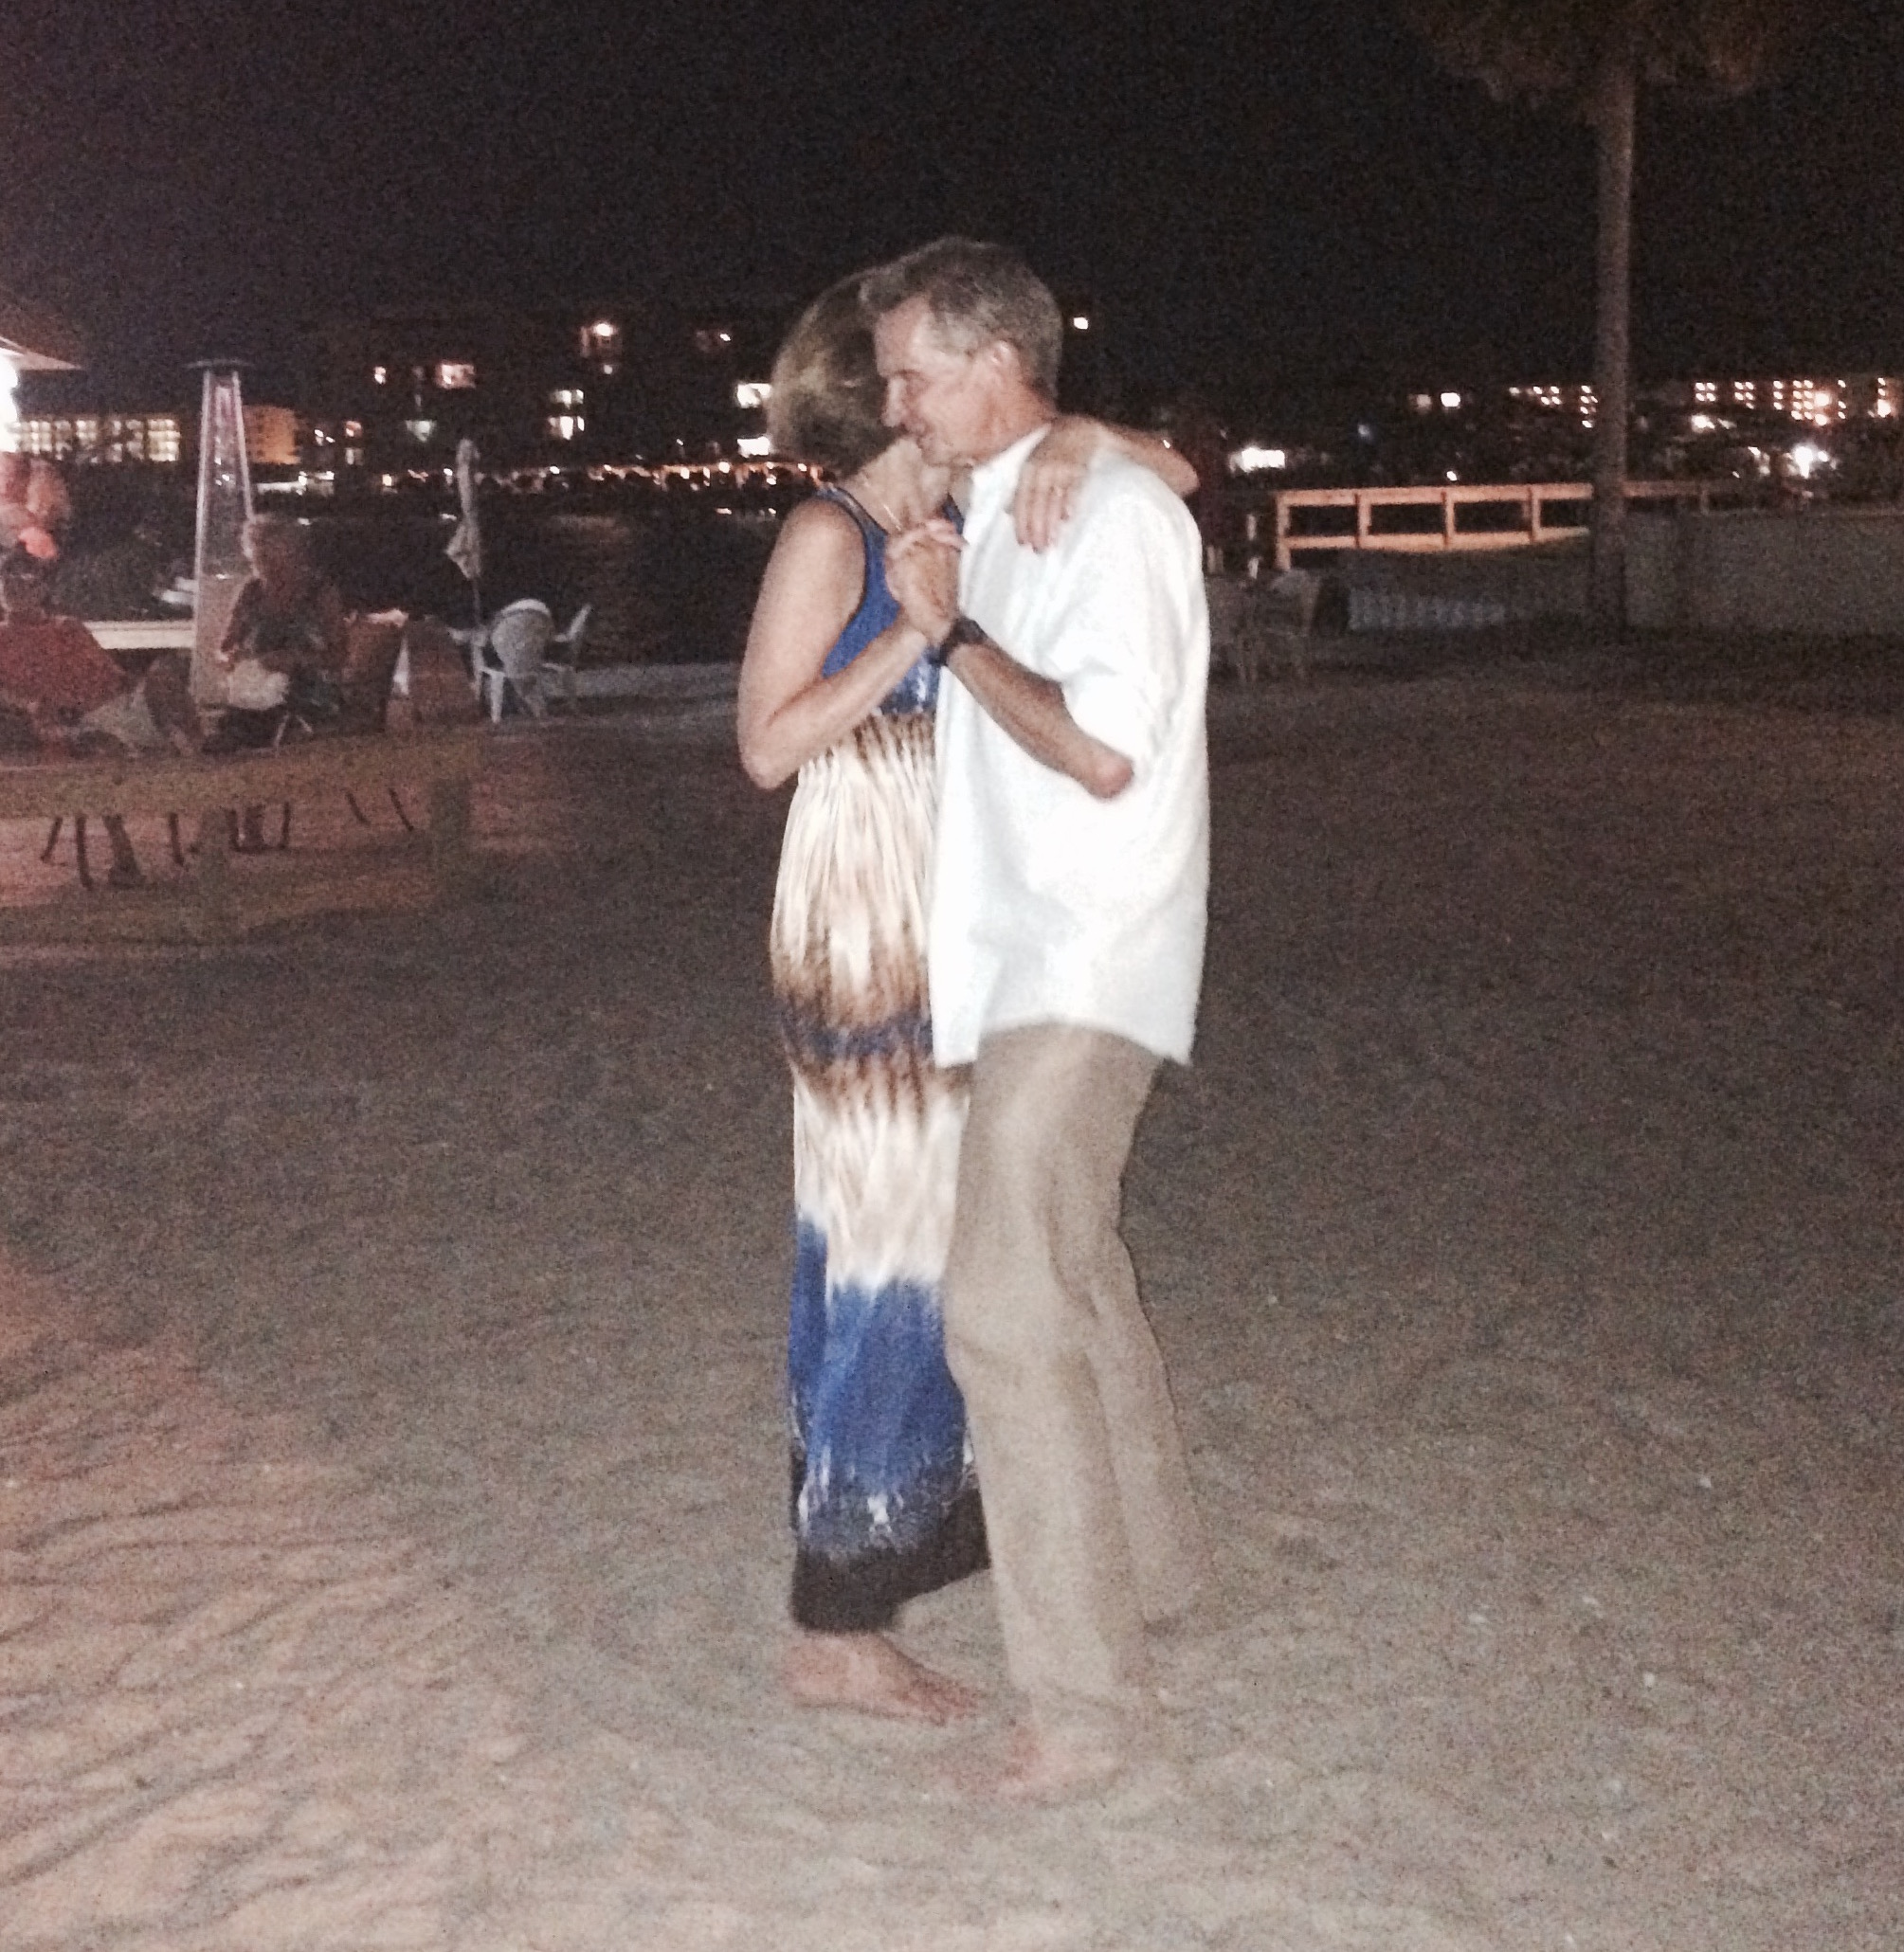 One should celebrate their birthday dancing barefoot at the beach with their honey!